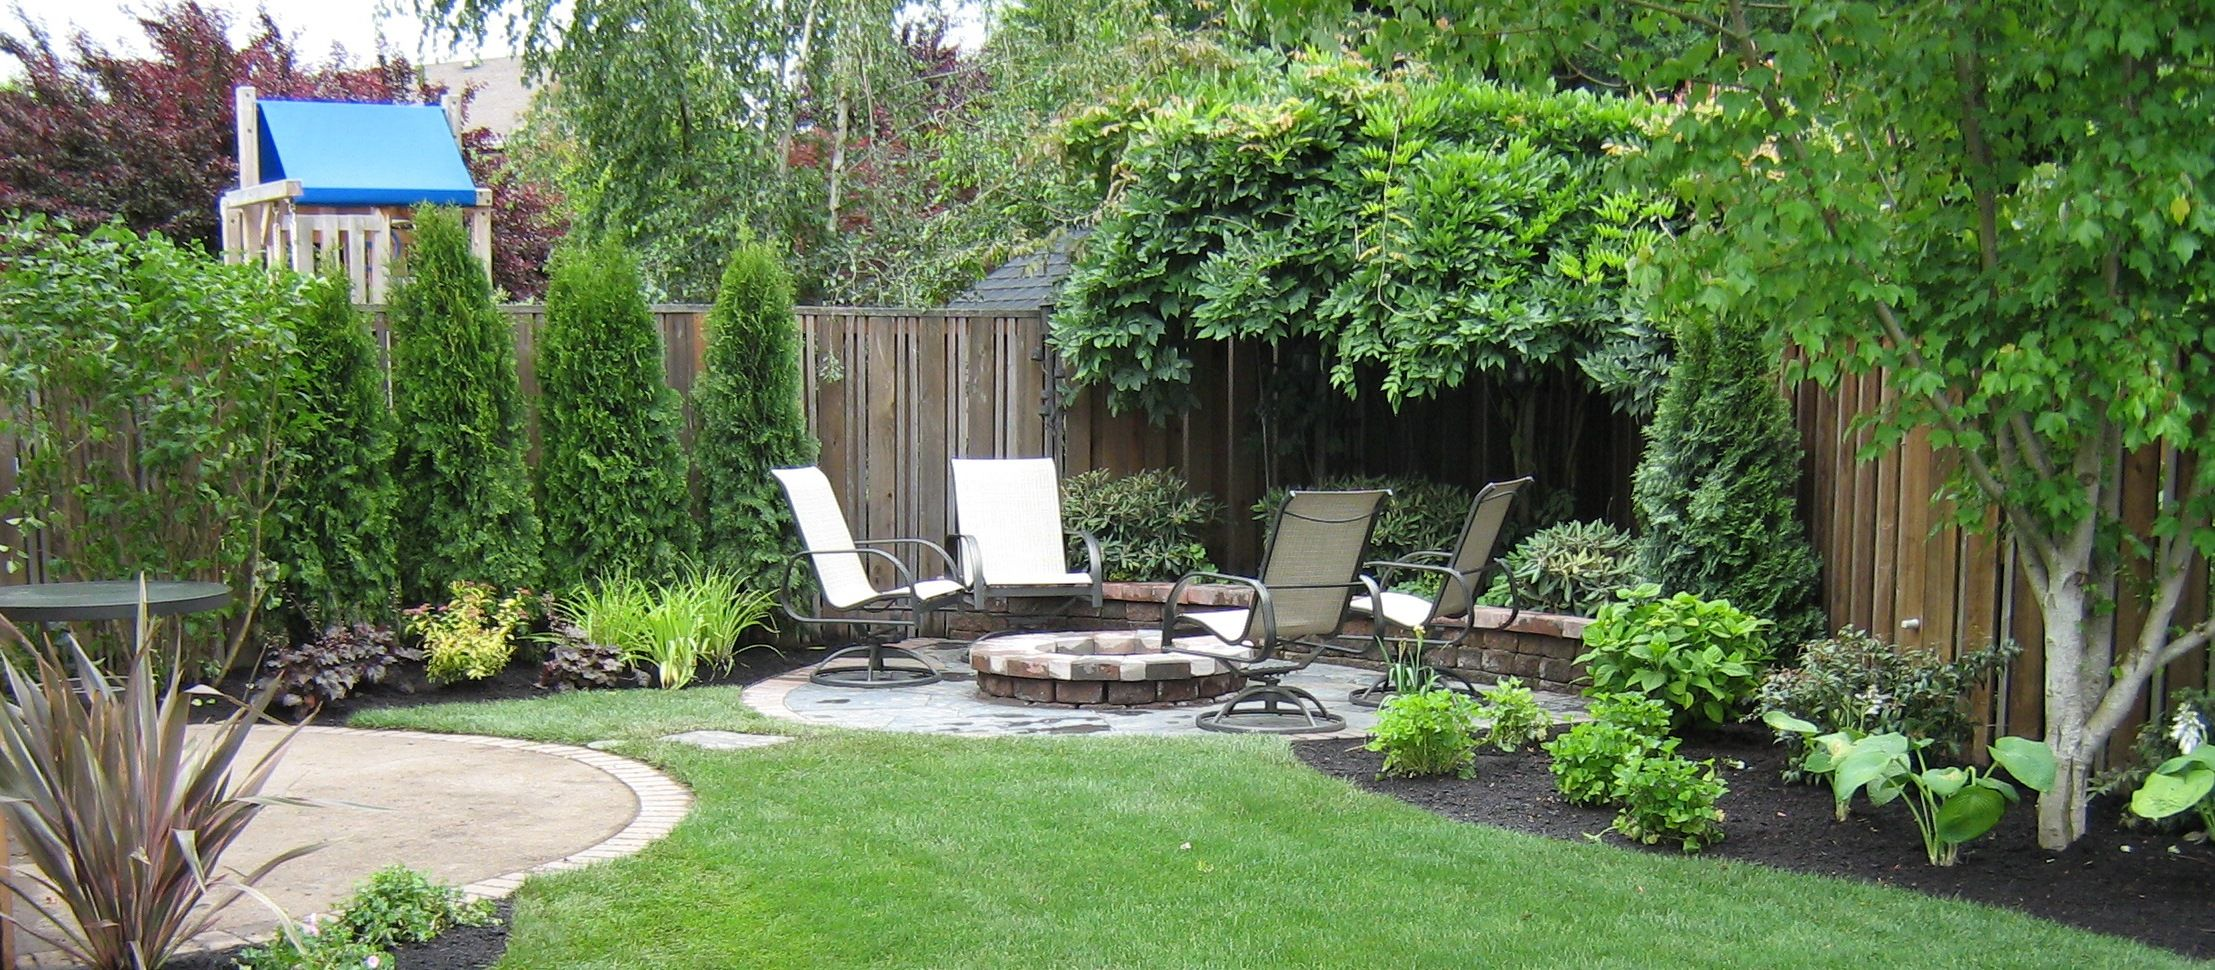 Small backyard landscaping ideas photos garden design for Yard landscaping ideas